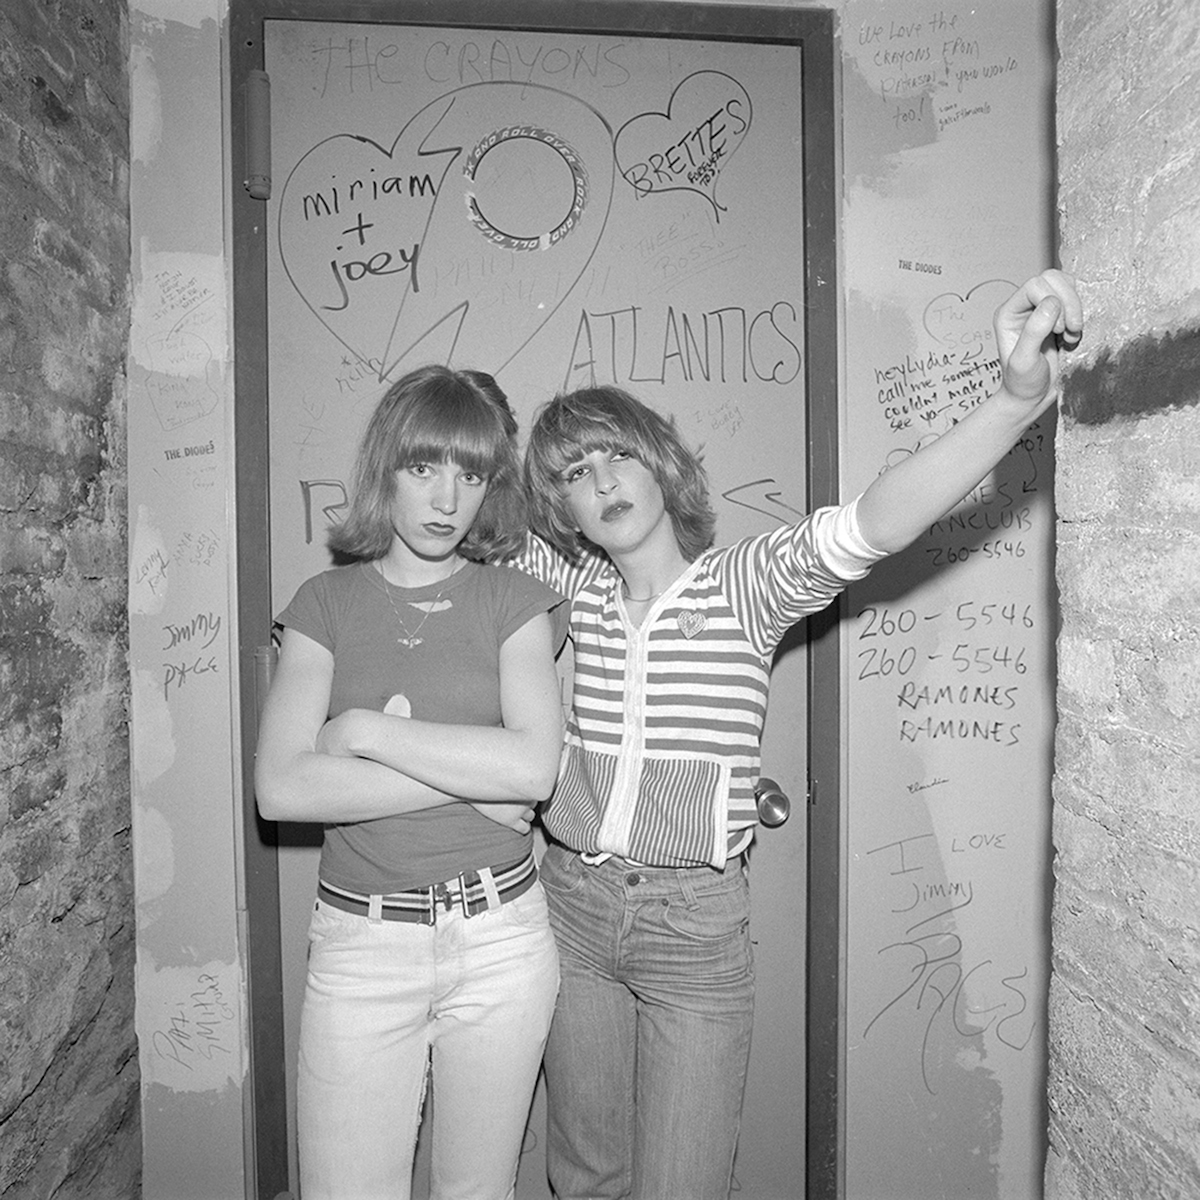 Two Blondes in a band at CBGB, NY, NY, March 1977